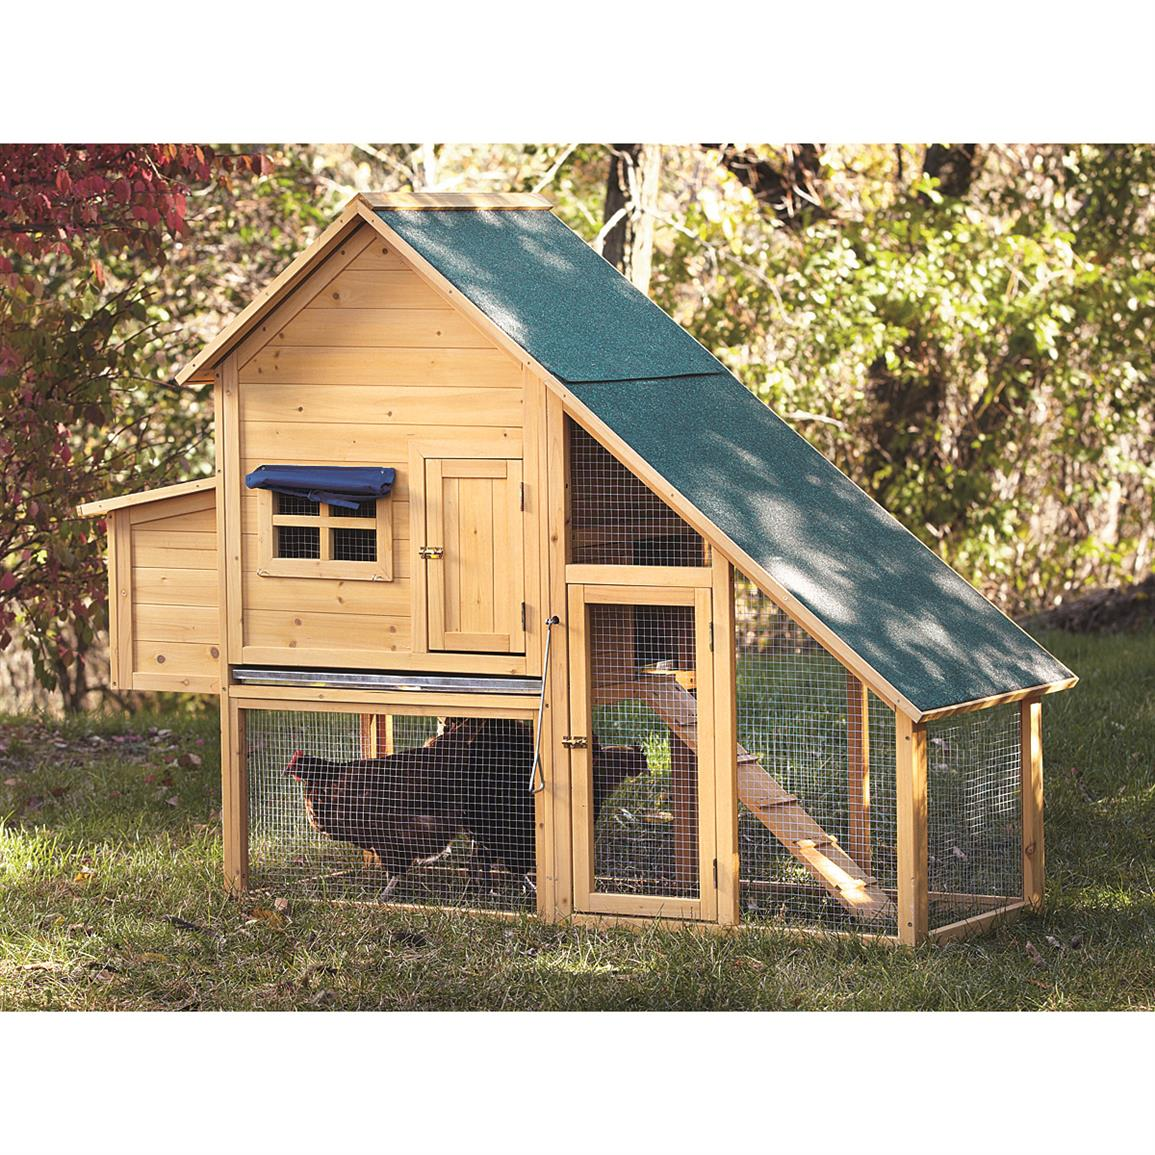 CASTLECREEK Farm House Chicken Coop with Nesting Box